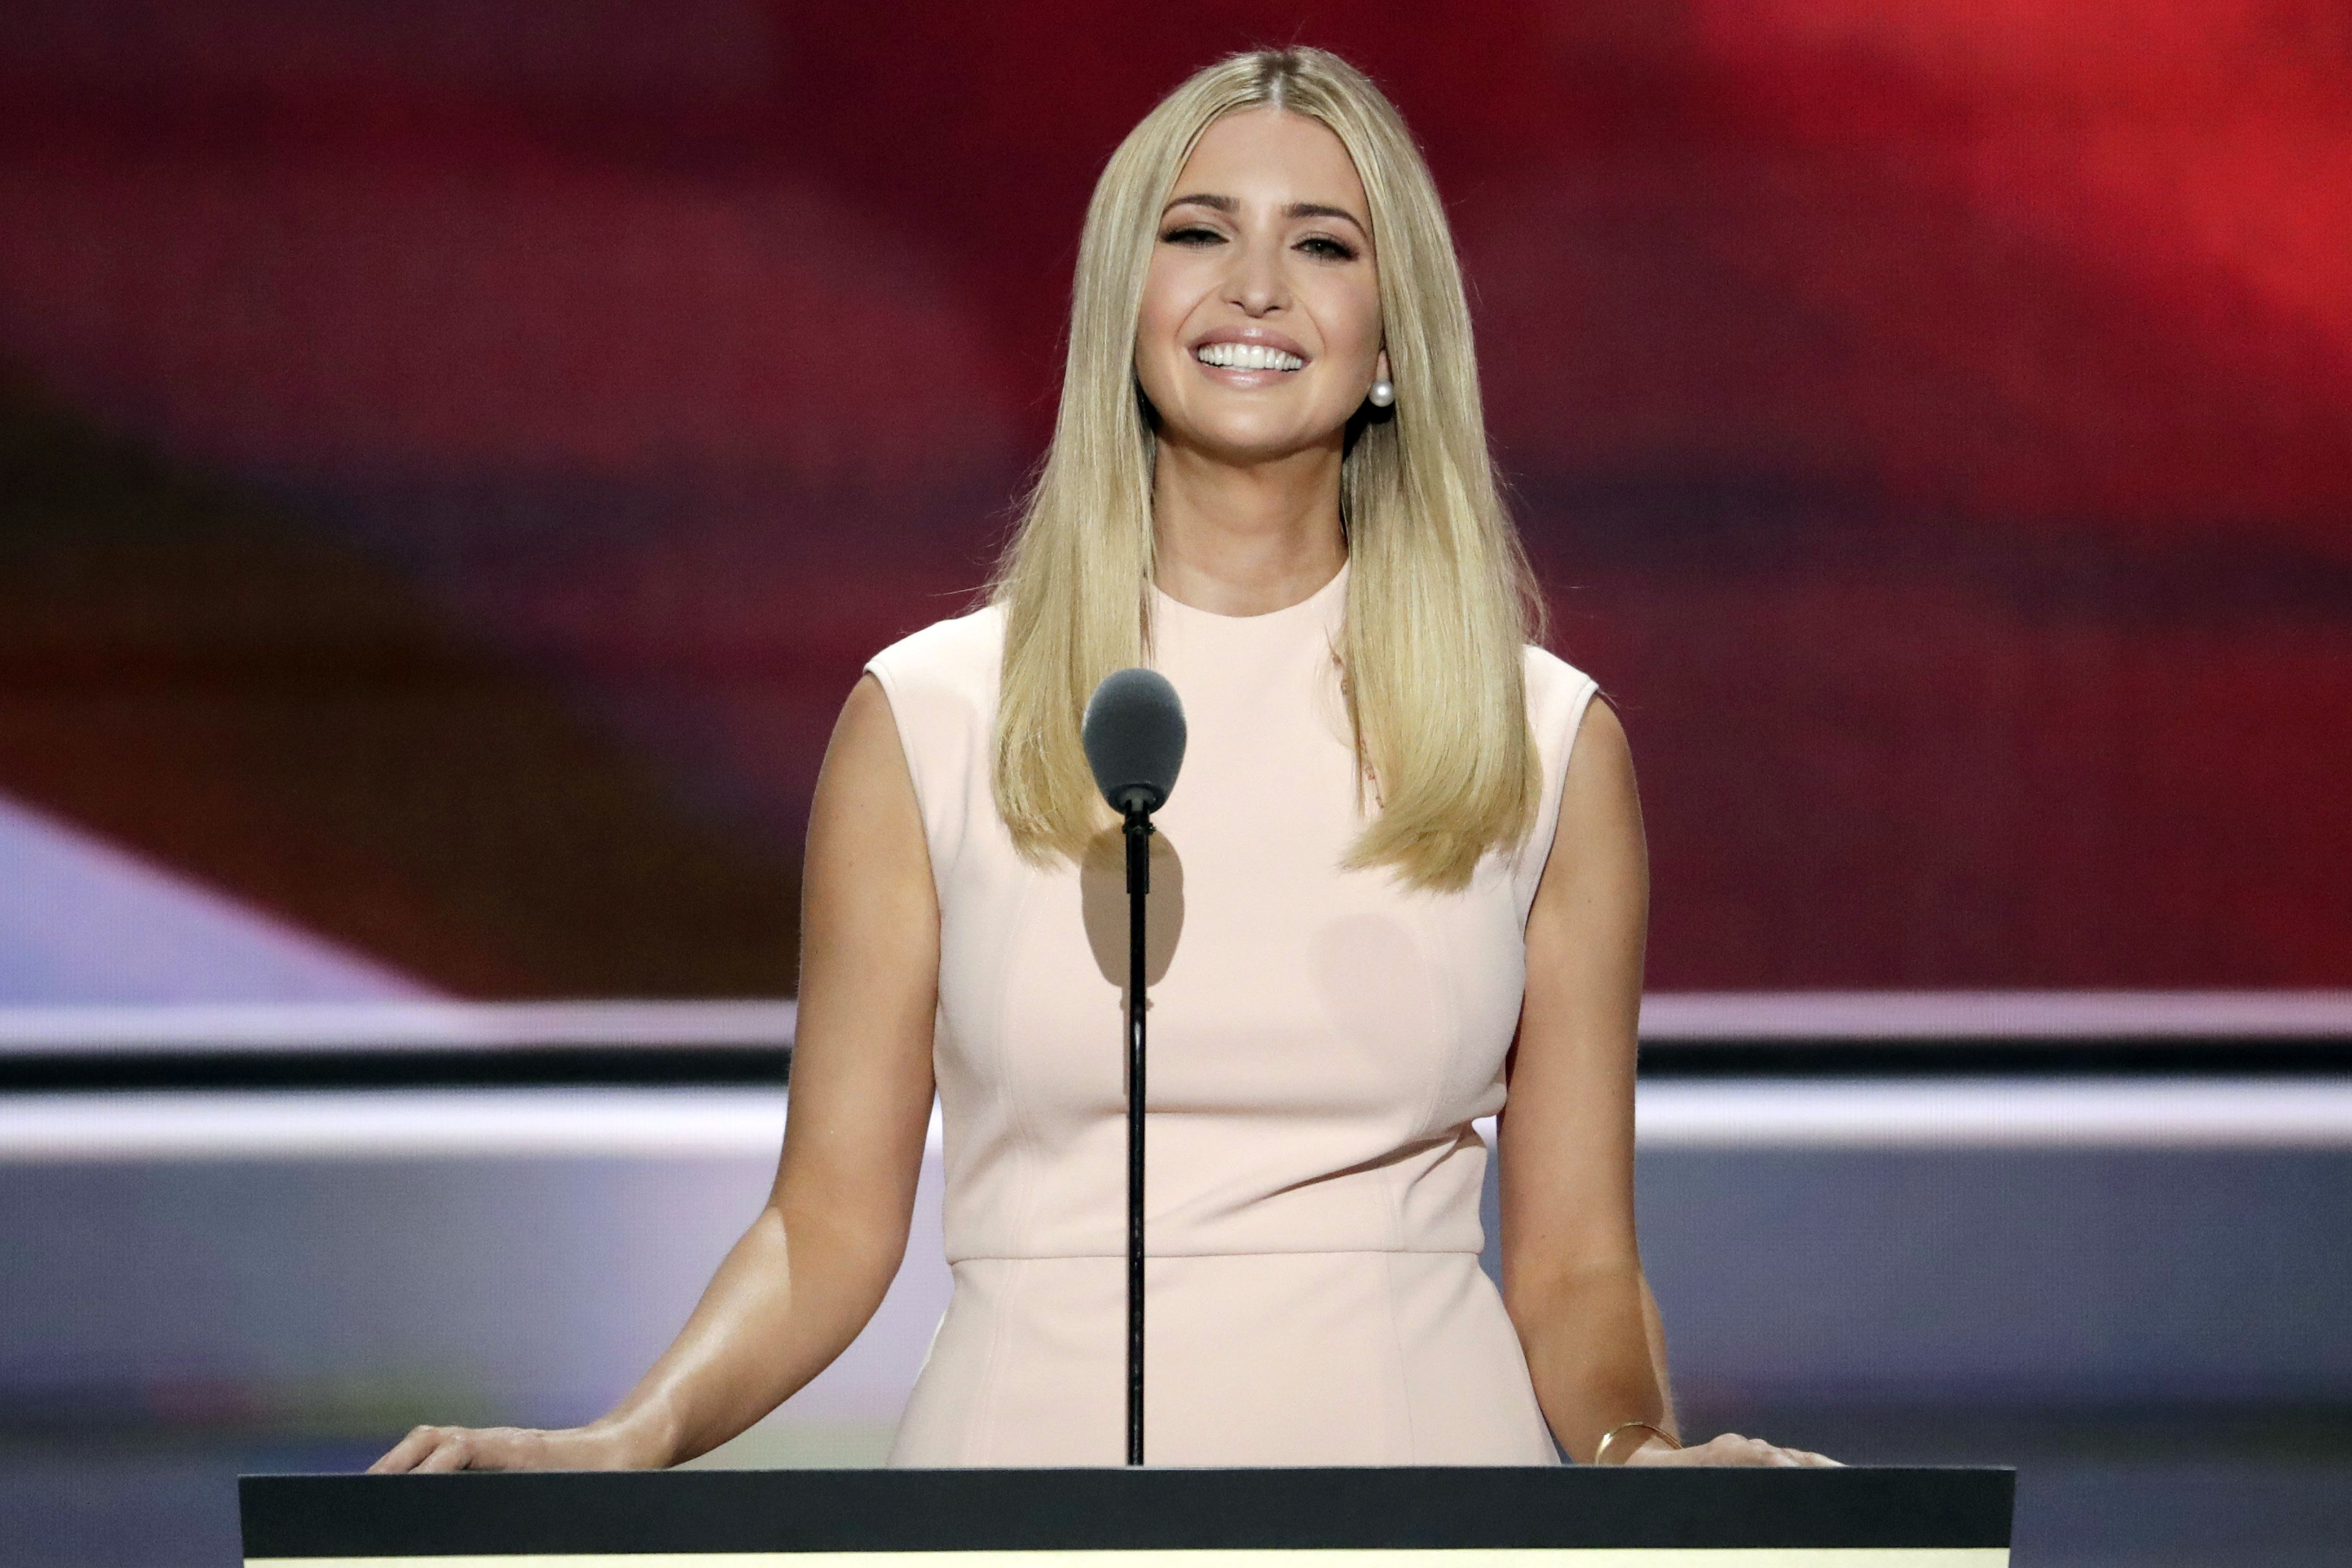 Ivanka Trump, daughter of Donald J. Trump, speaks during the final day of the Republican National Convention in Cleveland, Thursday, July 21, 2016.